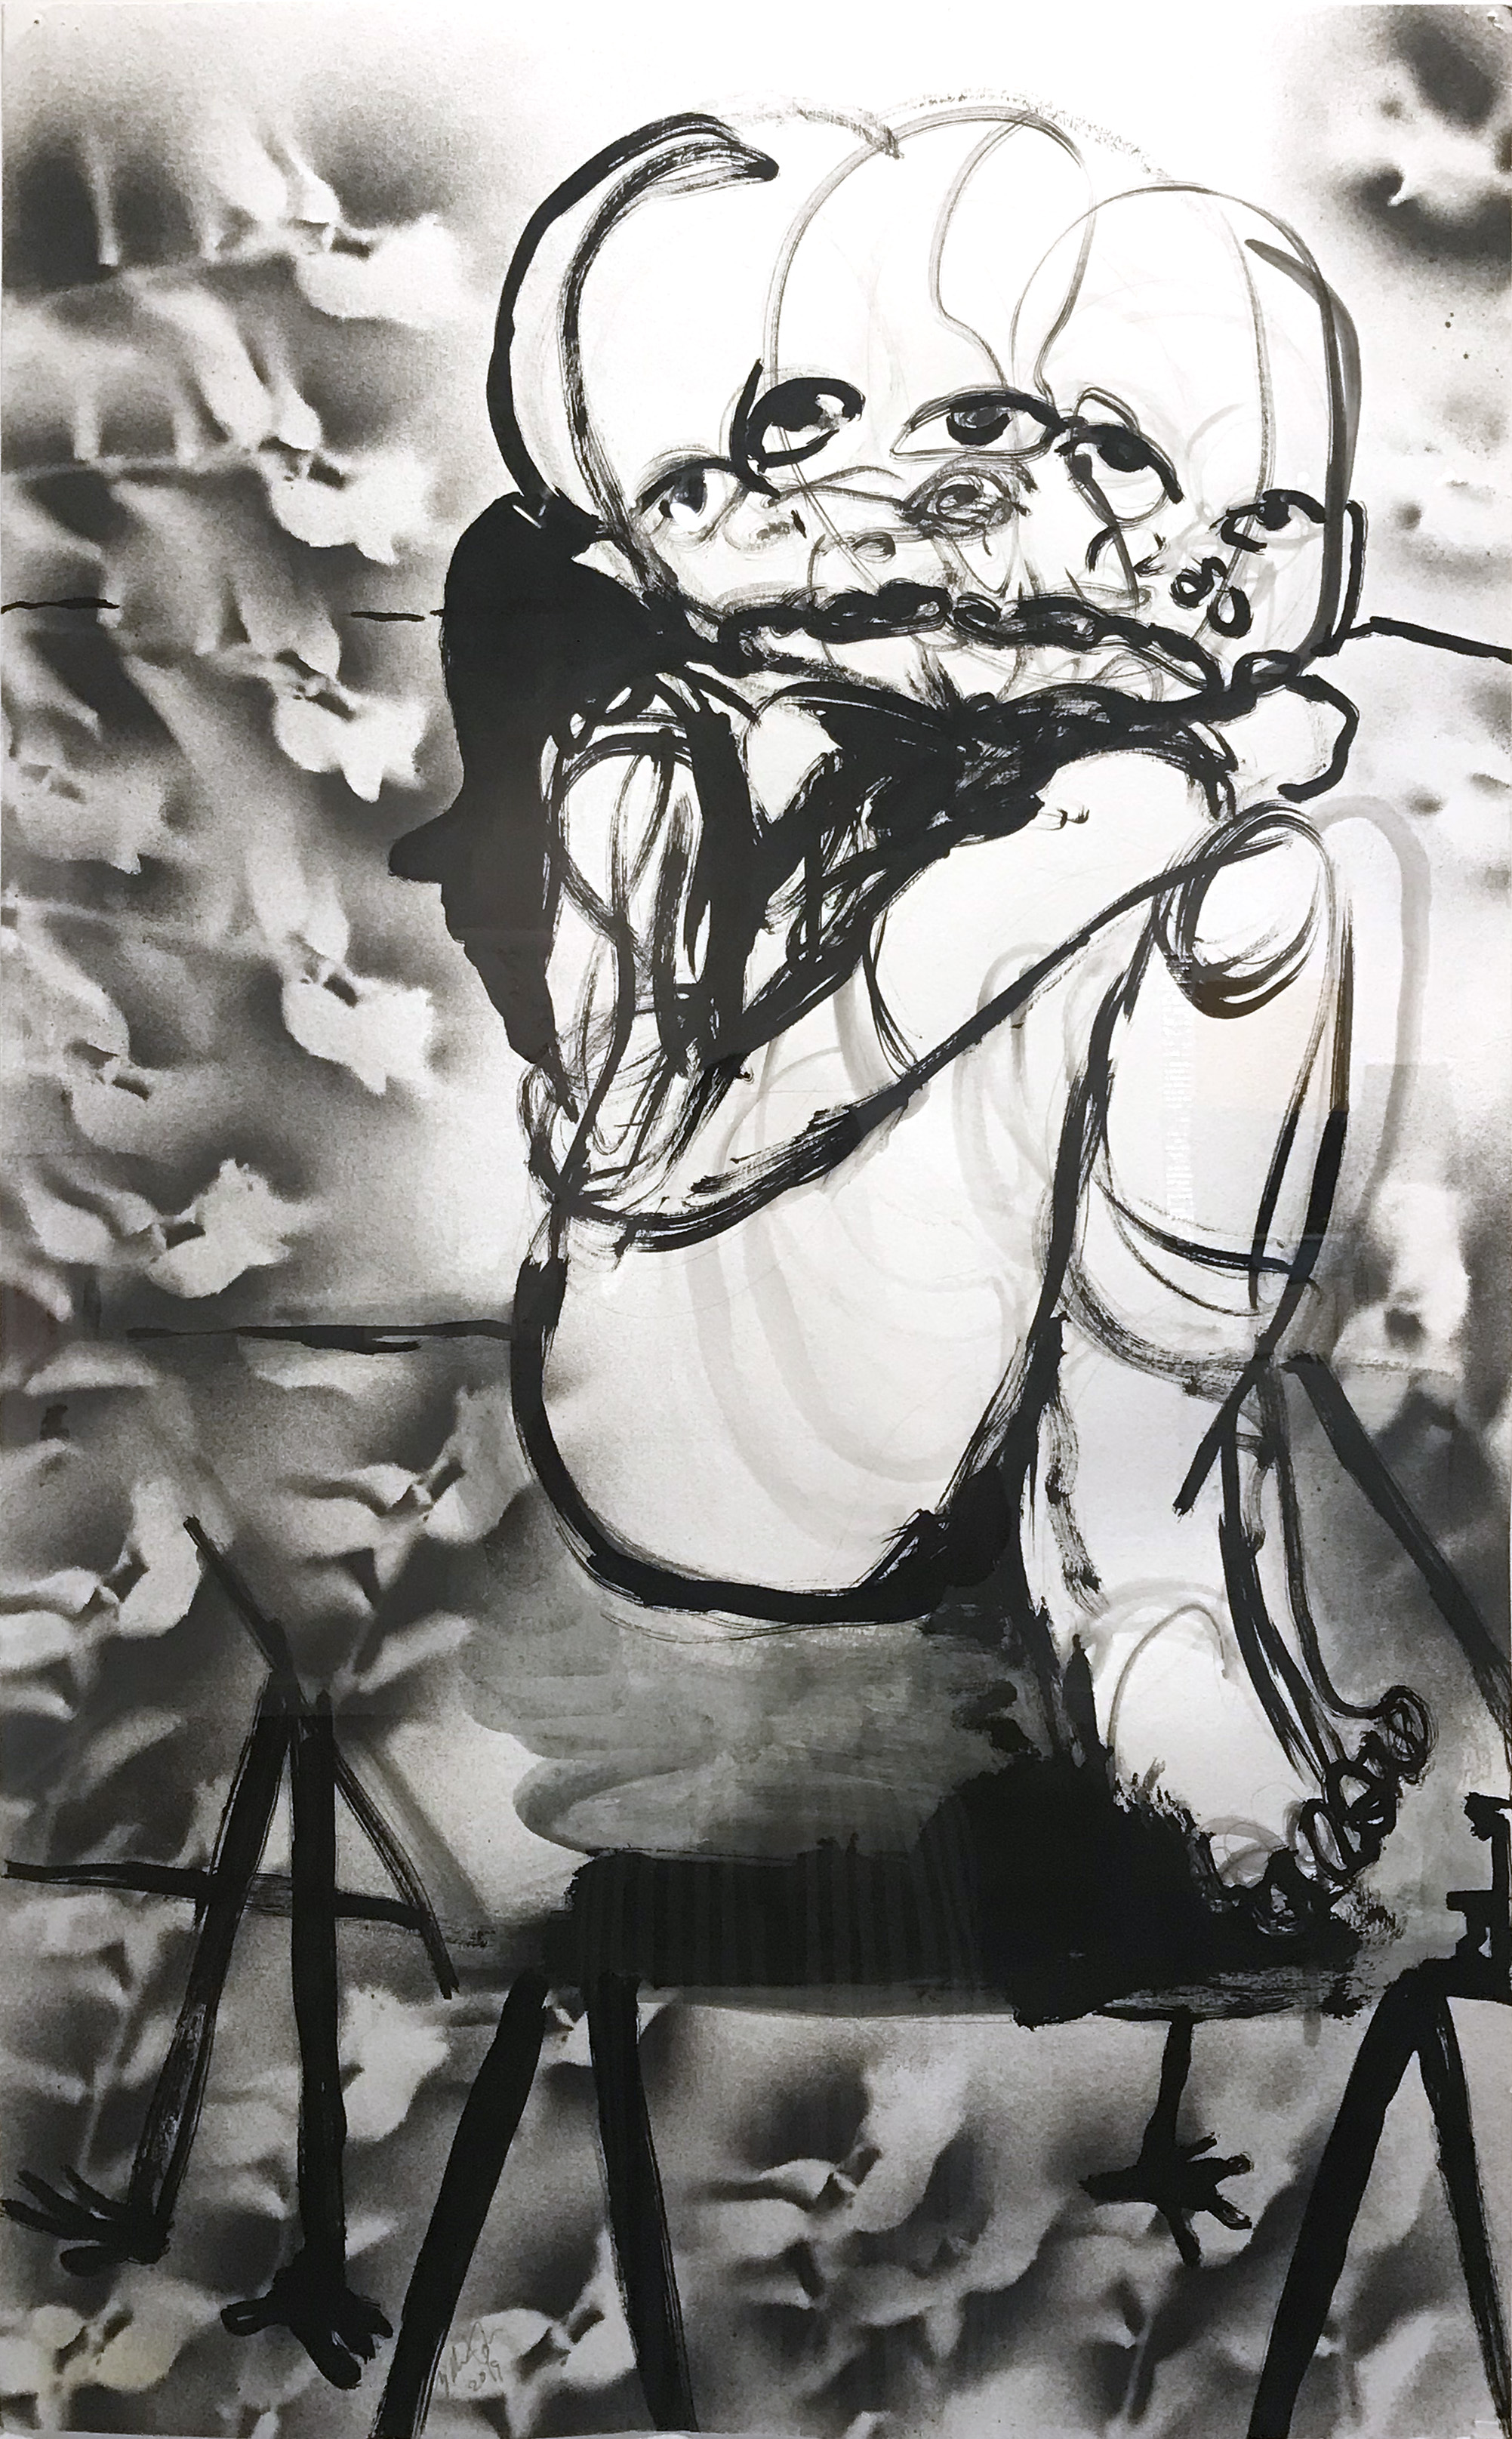 William Downs   Drawing spirits all night,  2019  Ink wash and spray paint on paper  38H x 23.5W inches